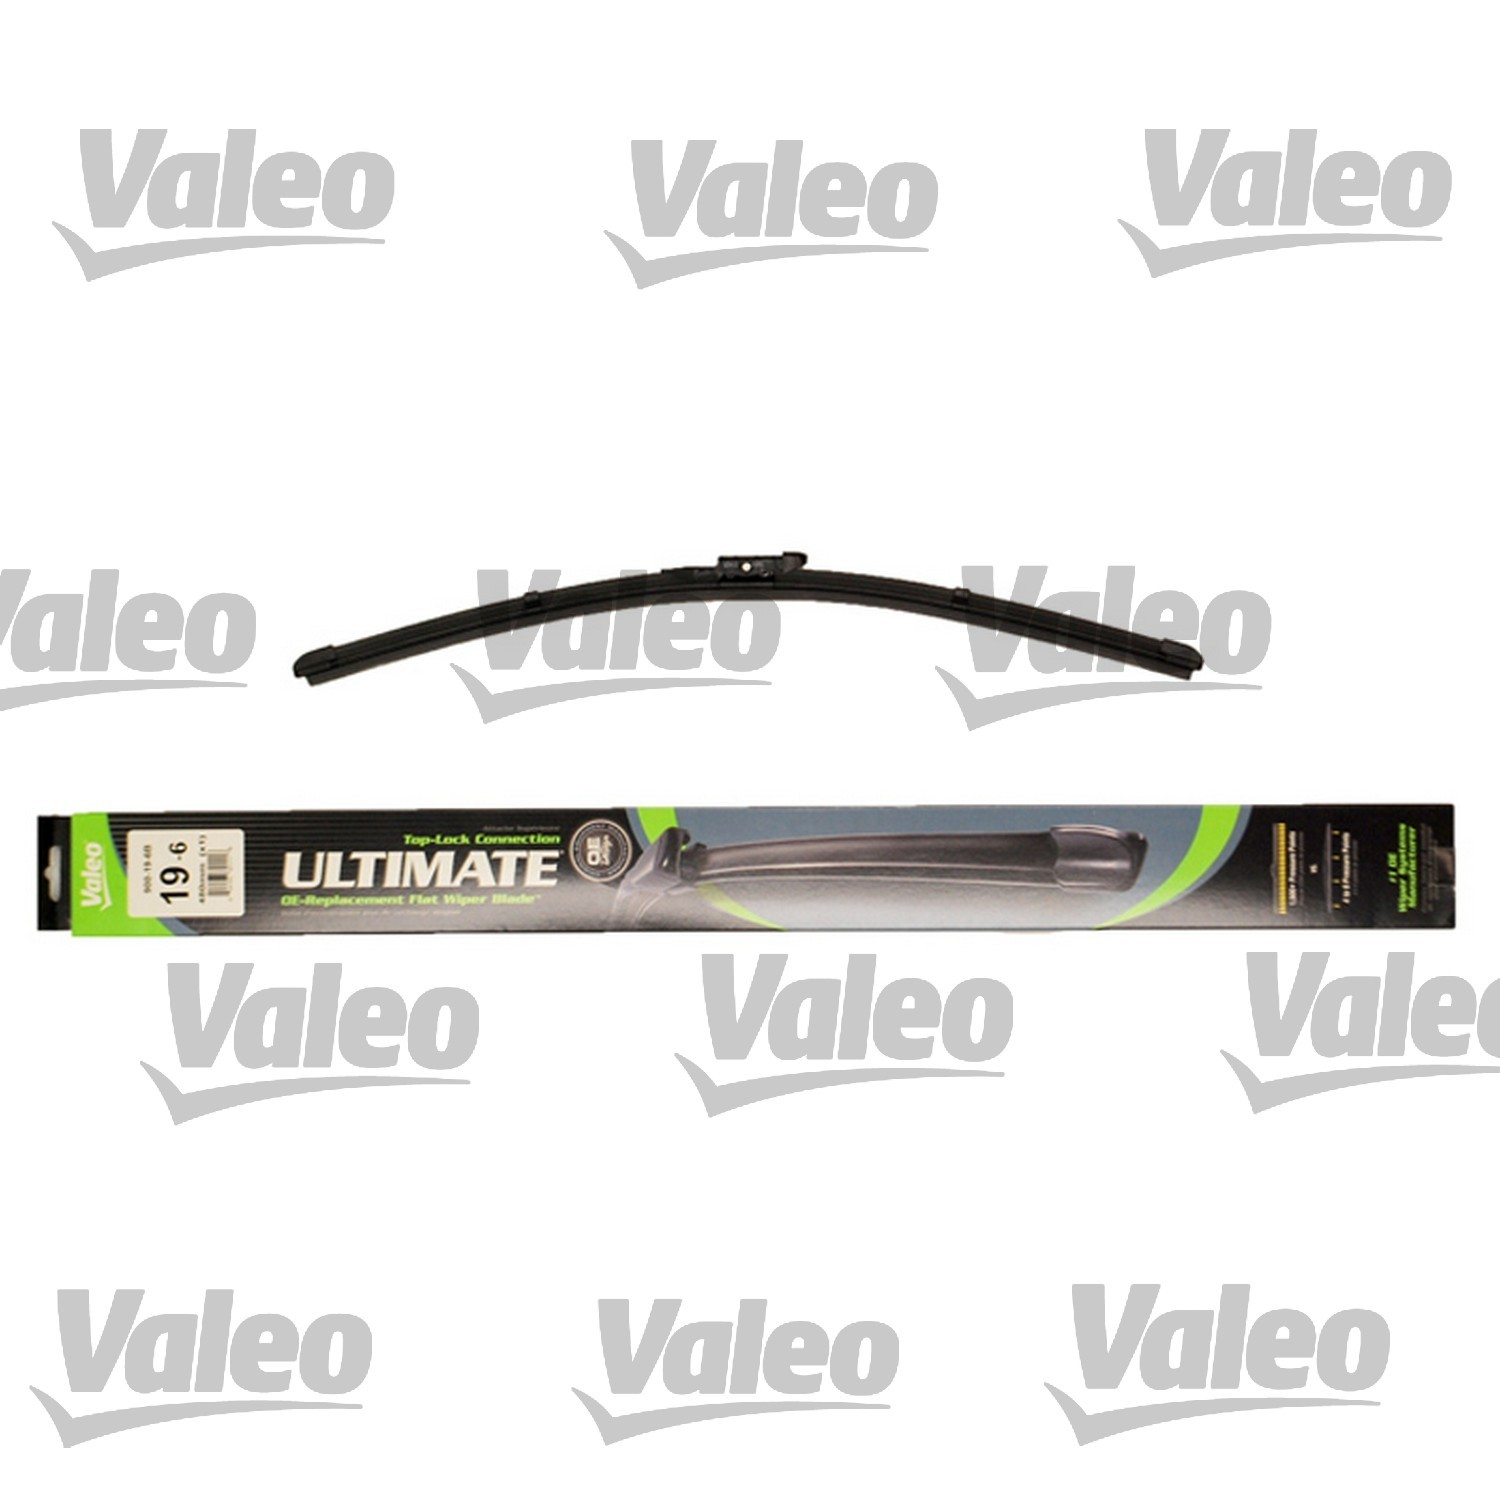 VALEO - Ultimate Wiper Blade - VEO 900-19-6B